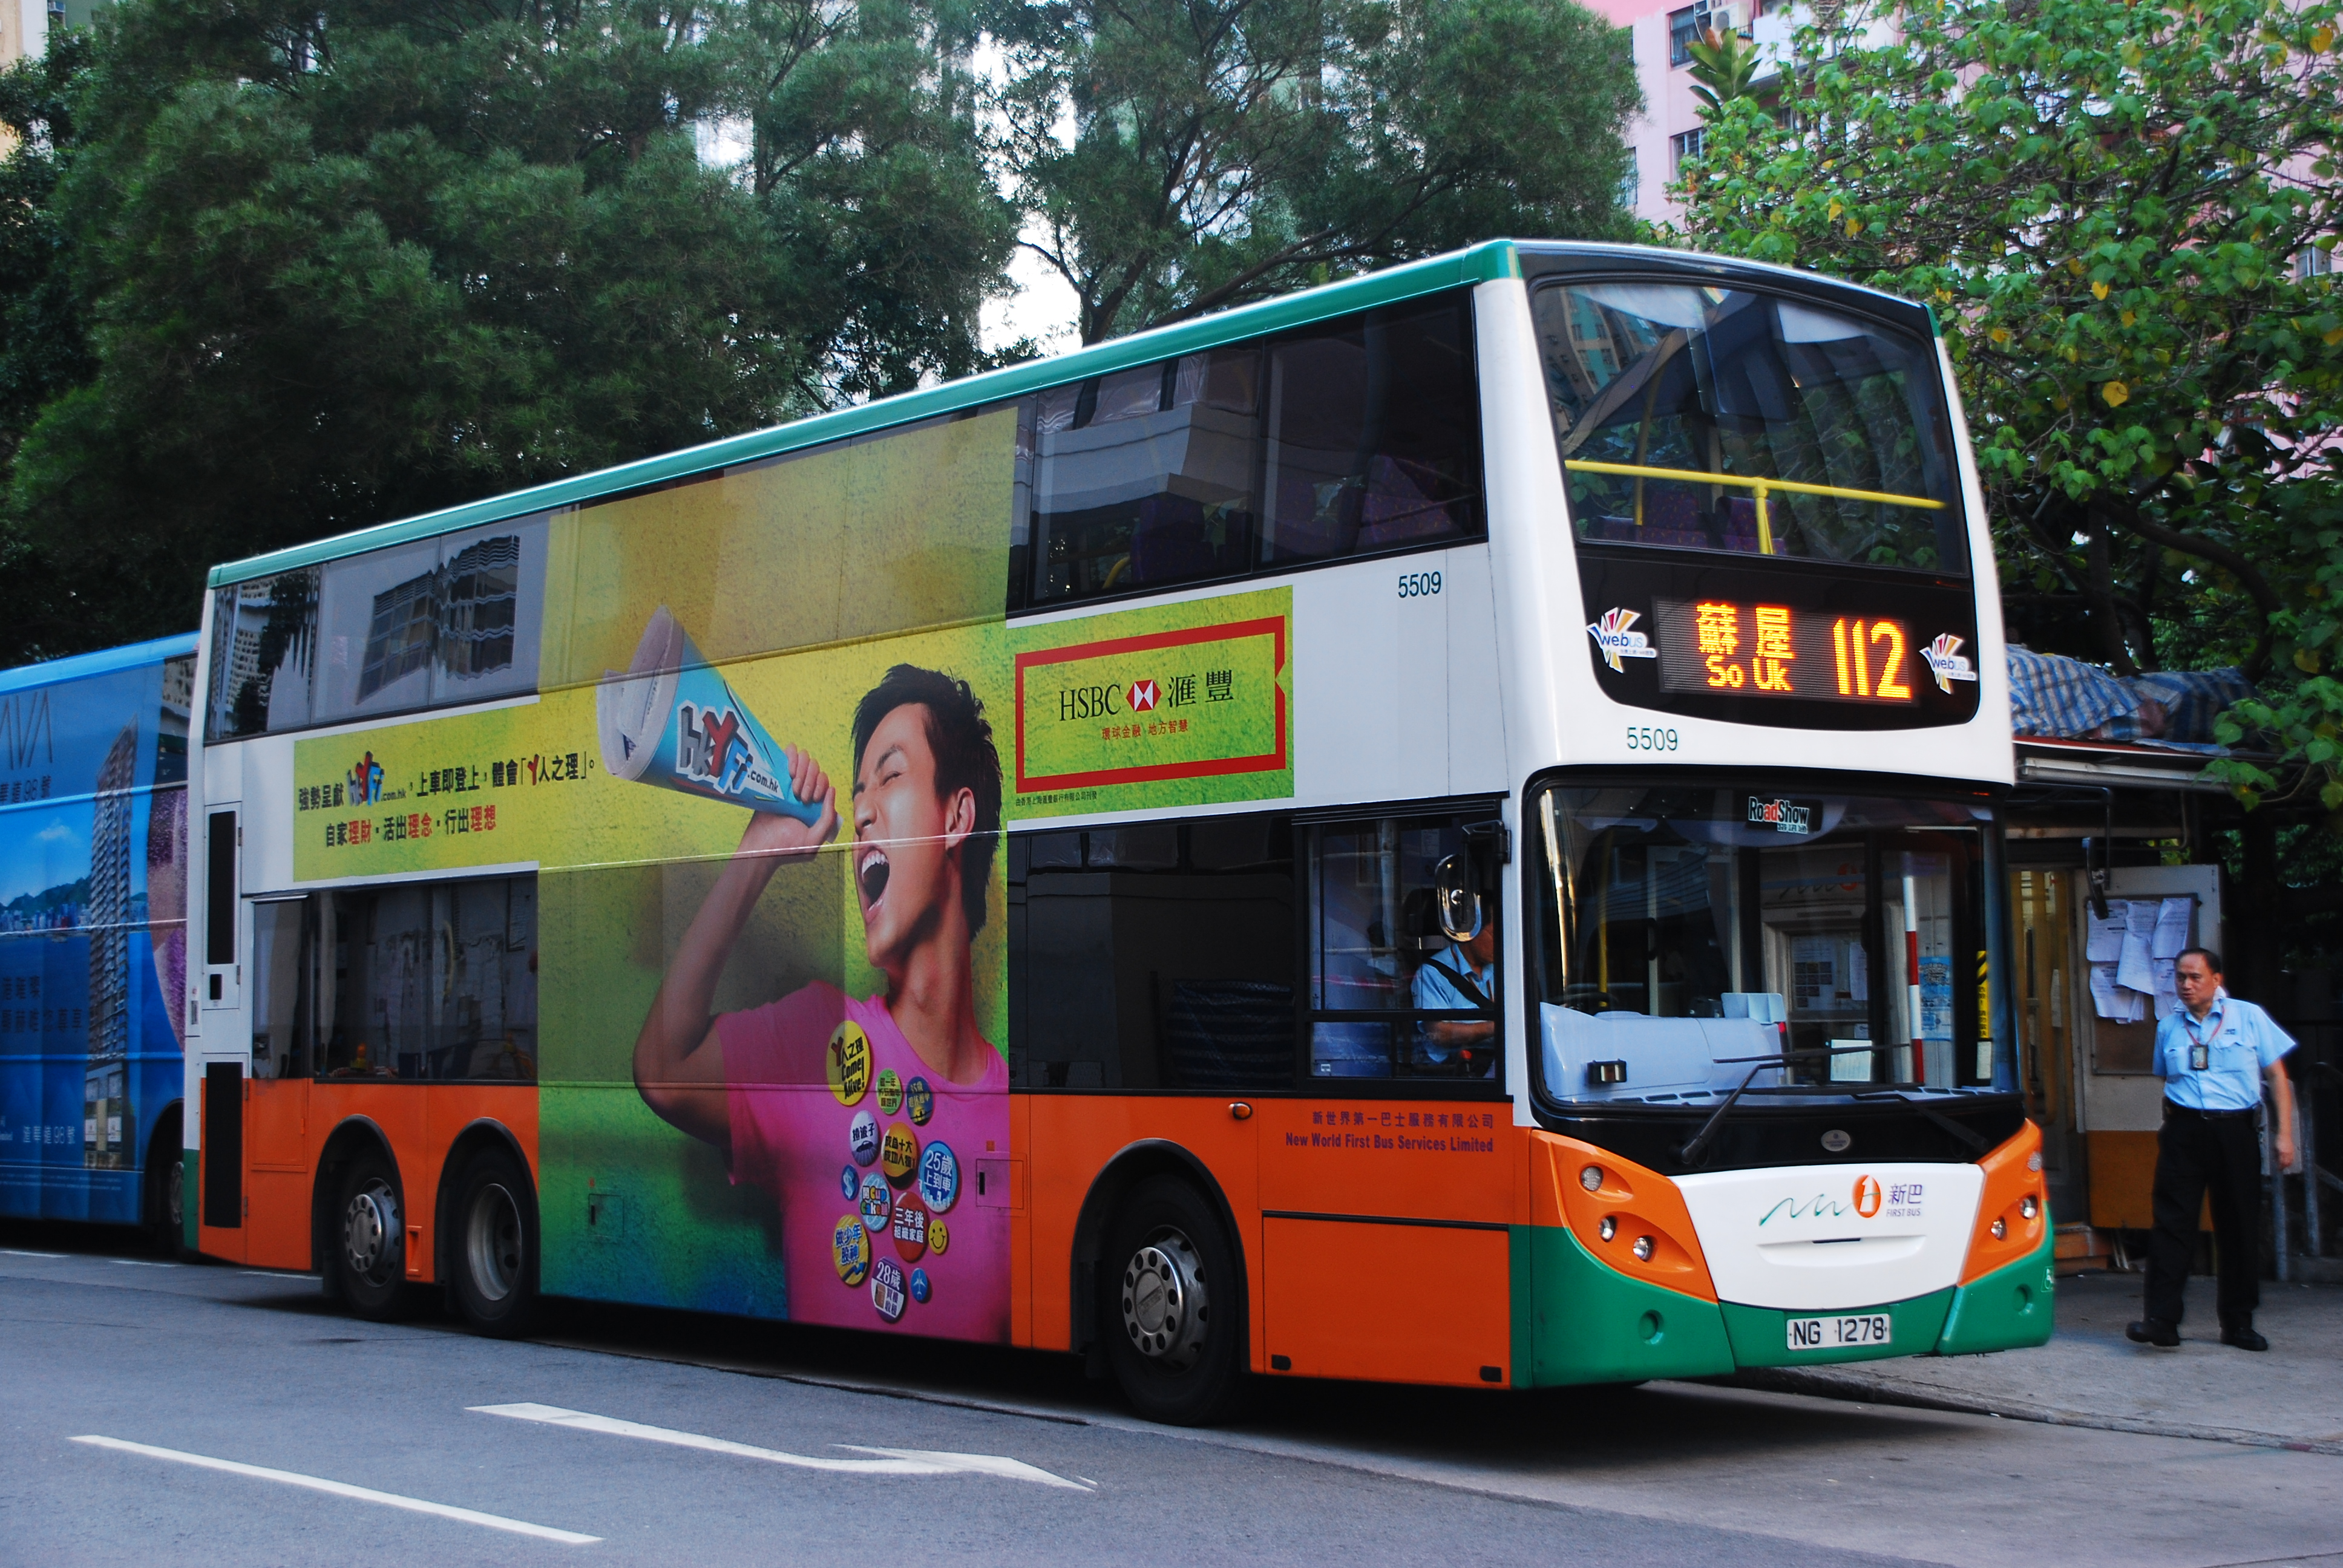 franchised bus route rationalization in hk Kmb sources say the pass will cost hk$800, is good for 10 rides a day, cover most routes, including those covered jointly with new world first bus - night and day as well as cross-harbor - but restricted to two cross-border trips.